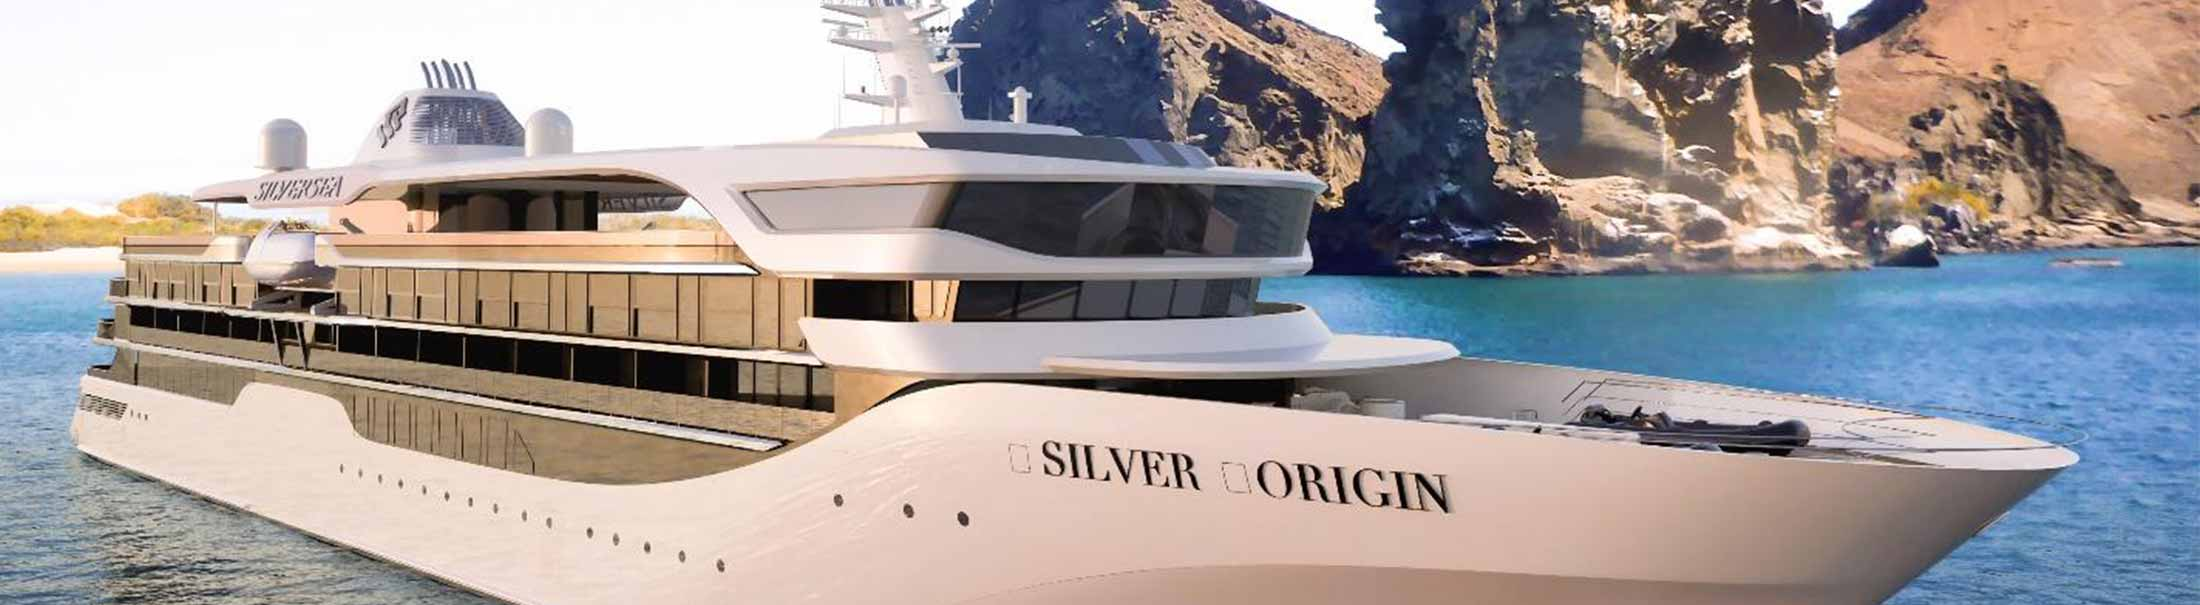 Silversea Origin 2 resize header